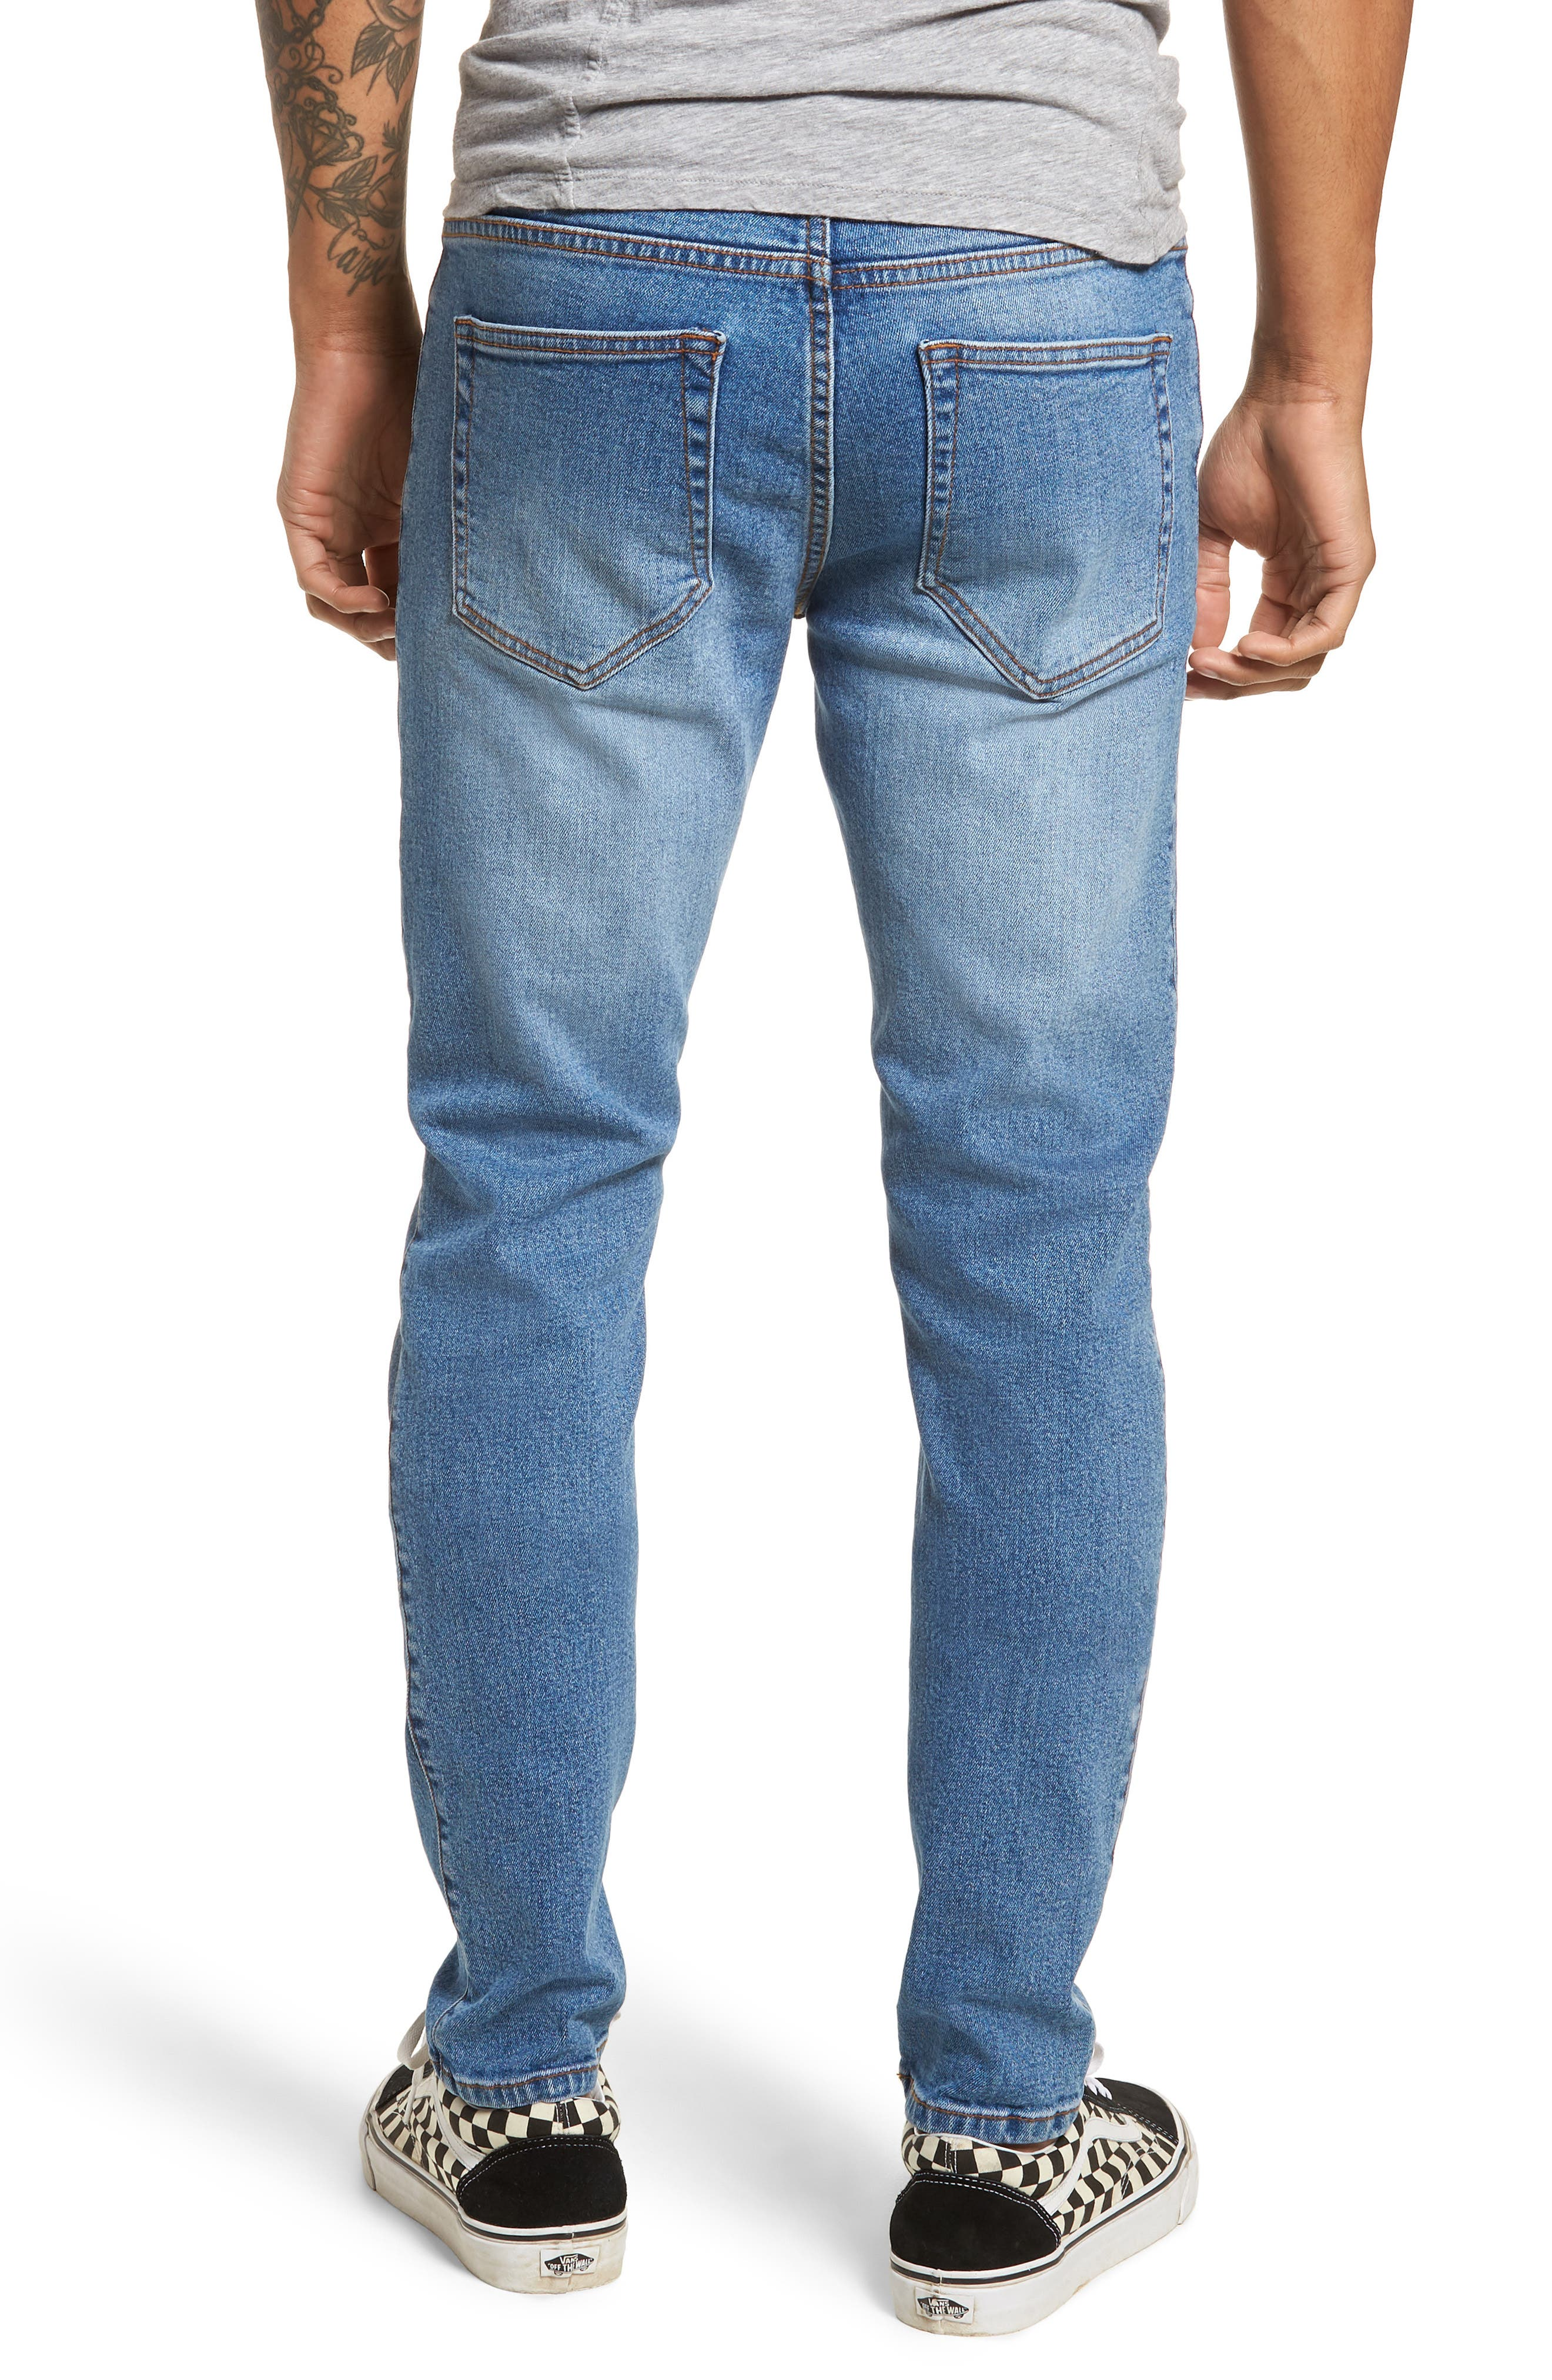 Clark Slim Straight Leg Jeans,                             Alternate thumbnail 2, color,                             402